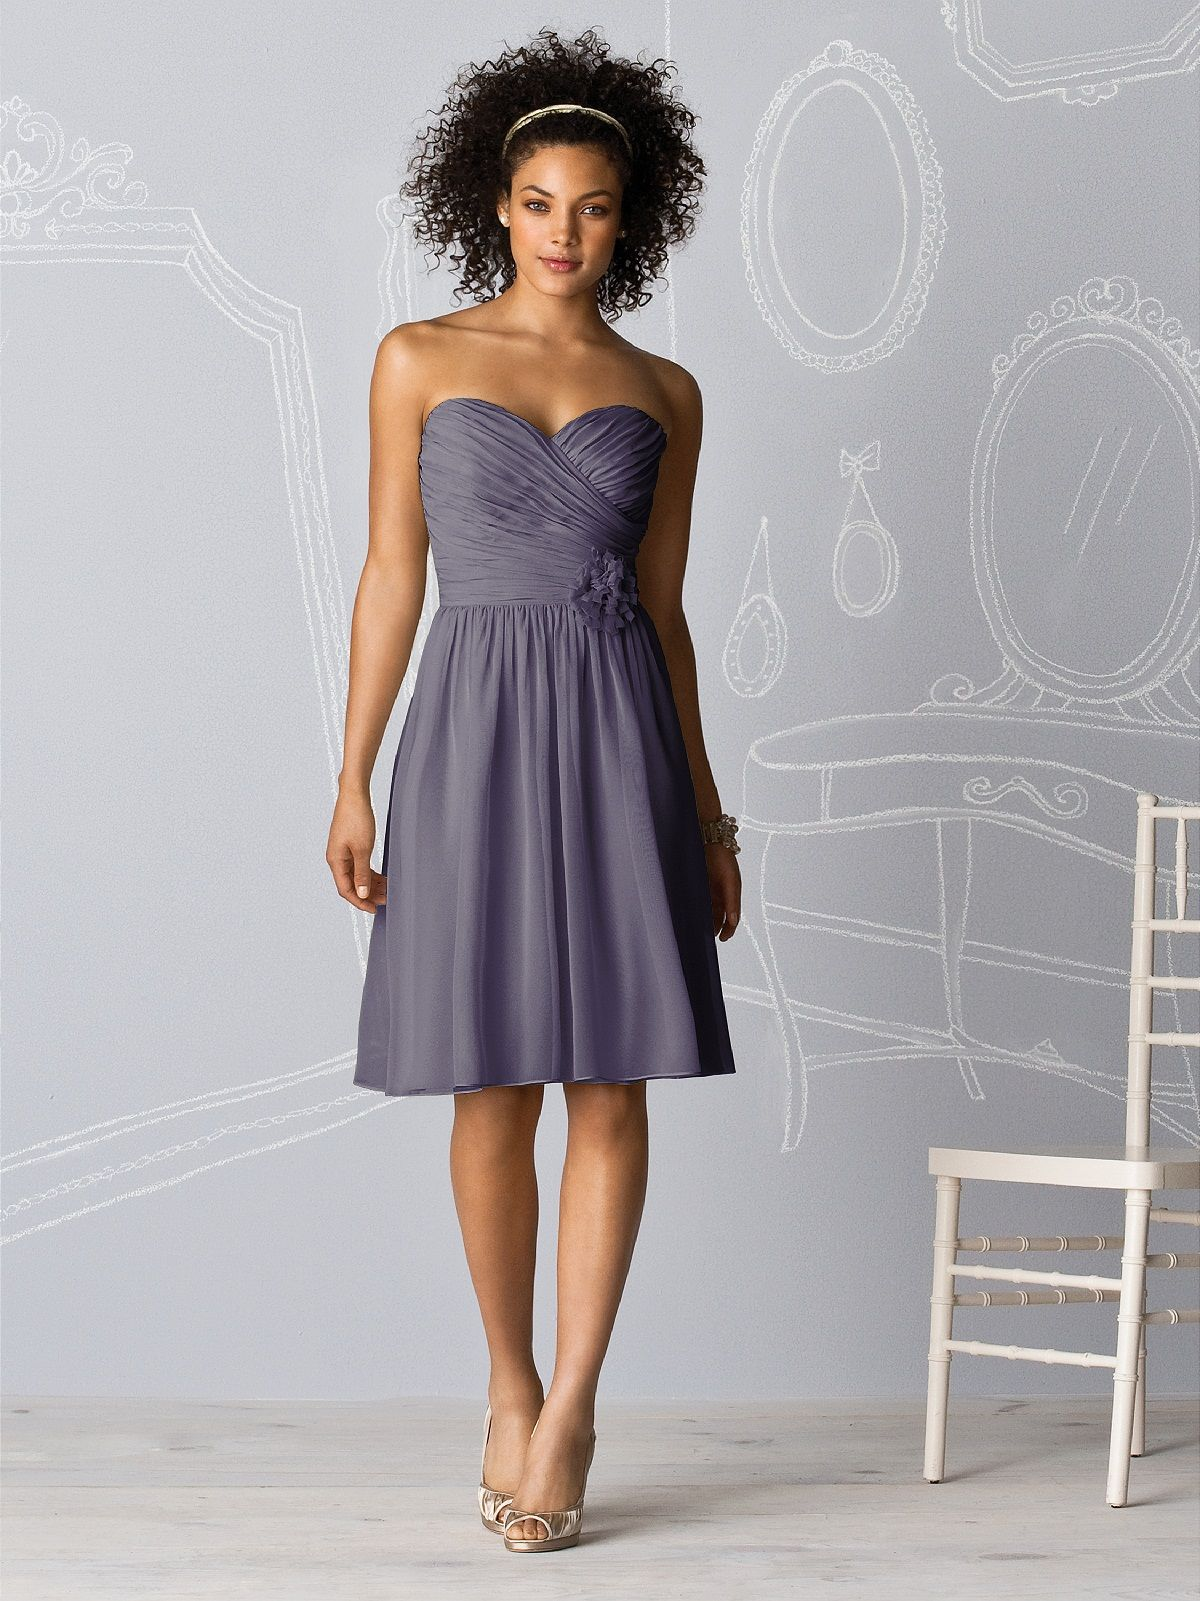 After bridesmaid dress style in stormy colors dresses